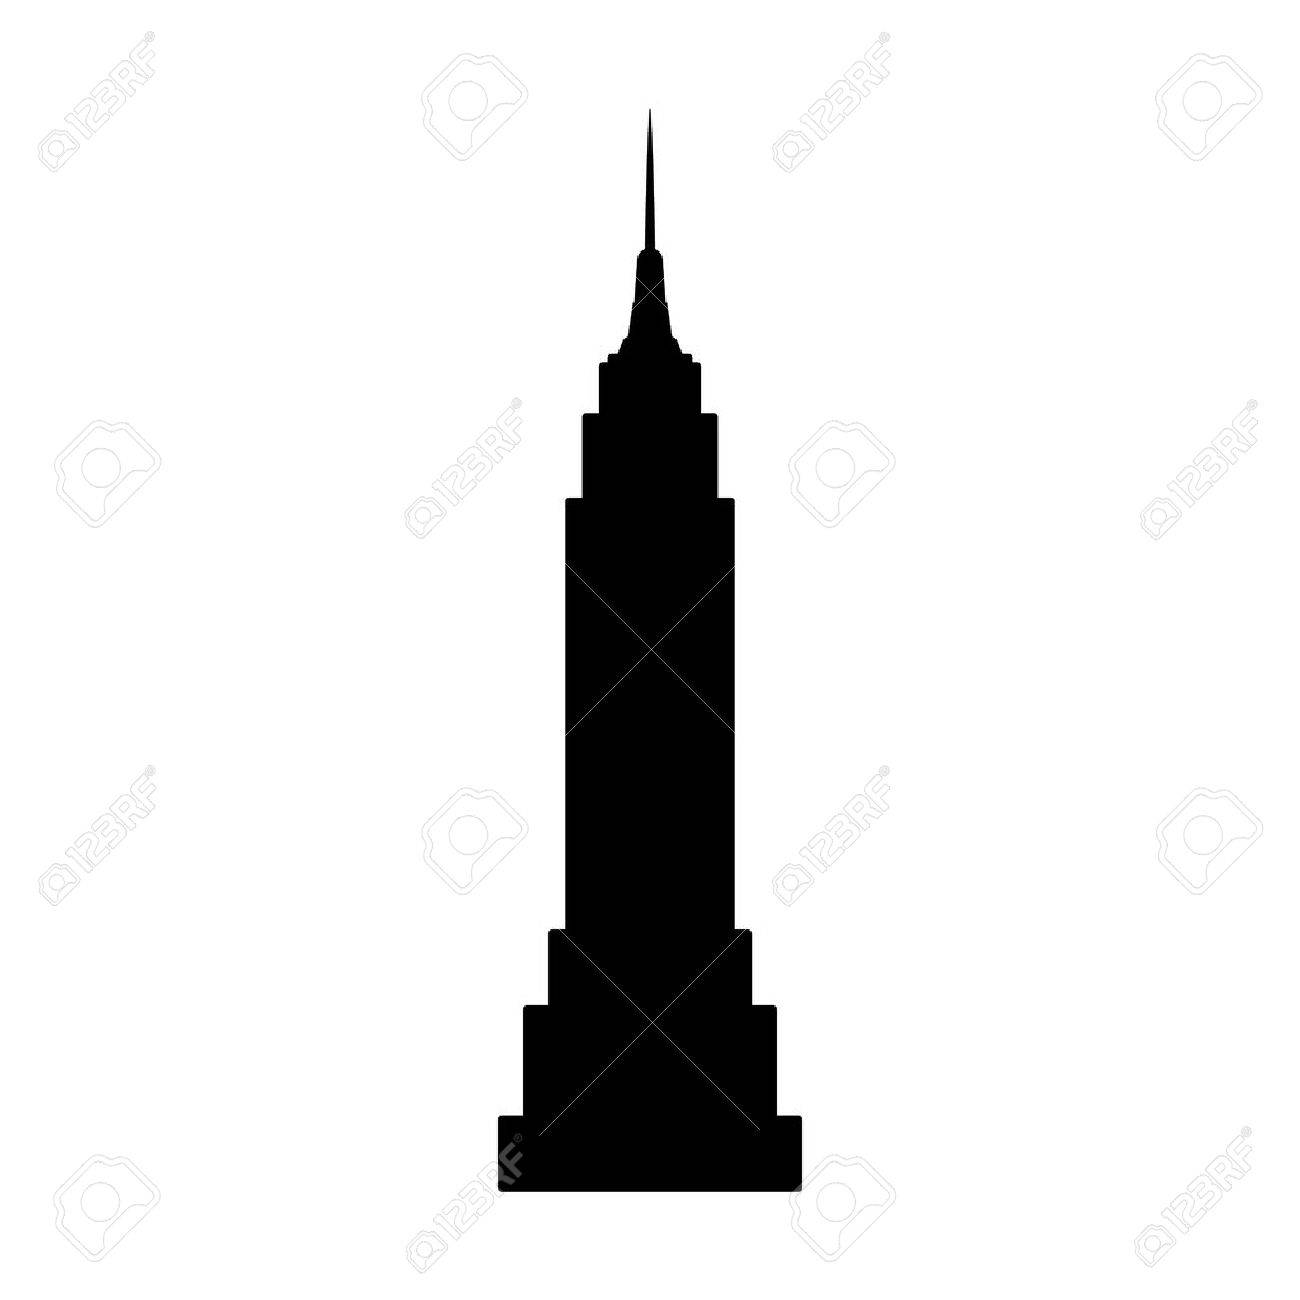 318 Empire State Building free clipart.